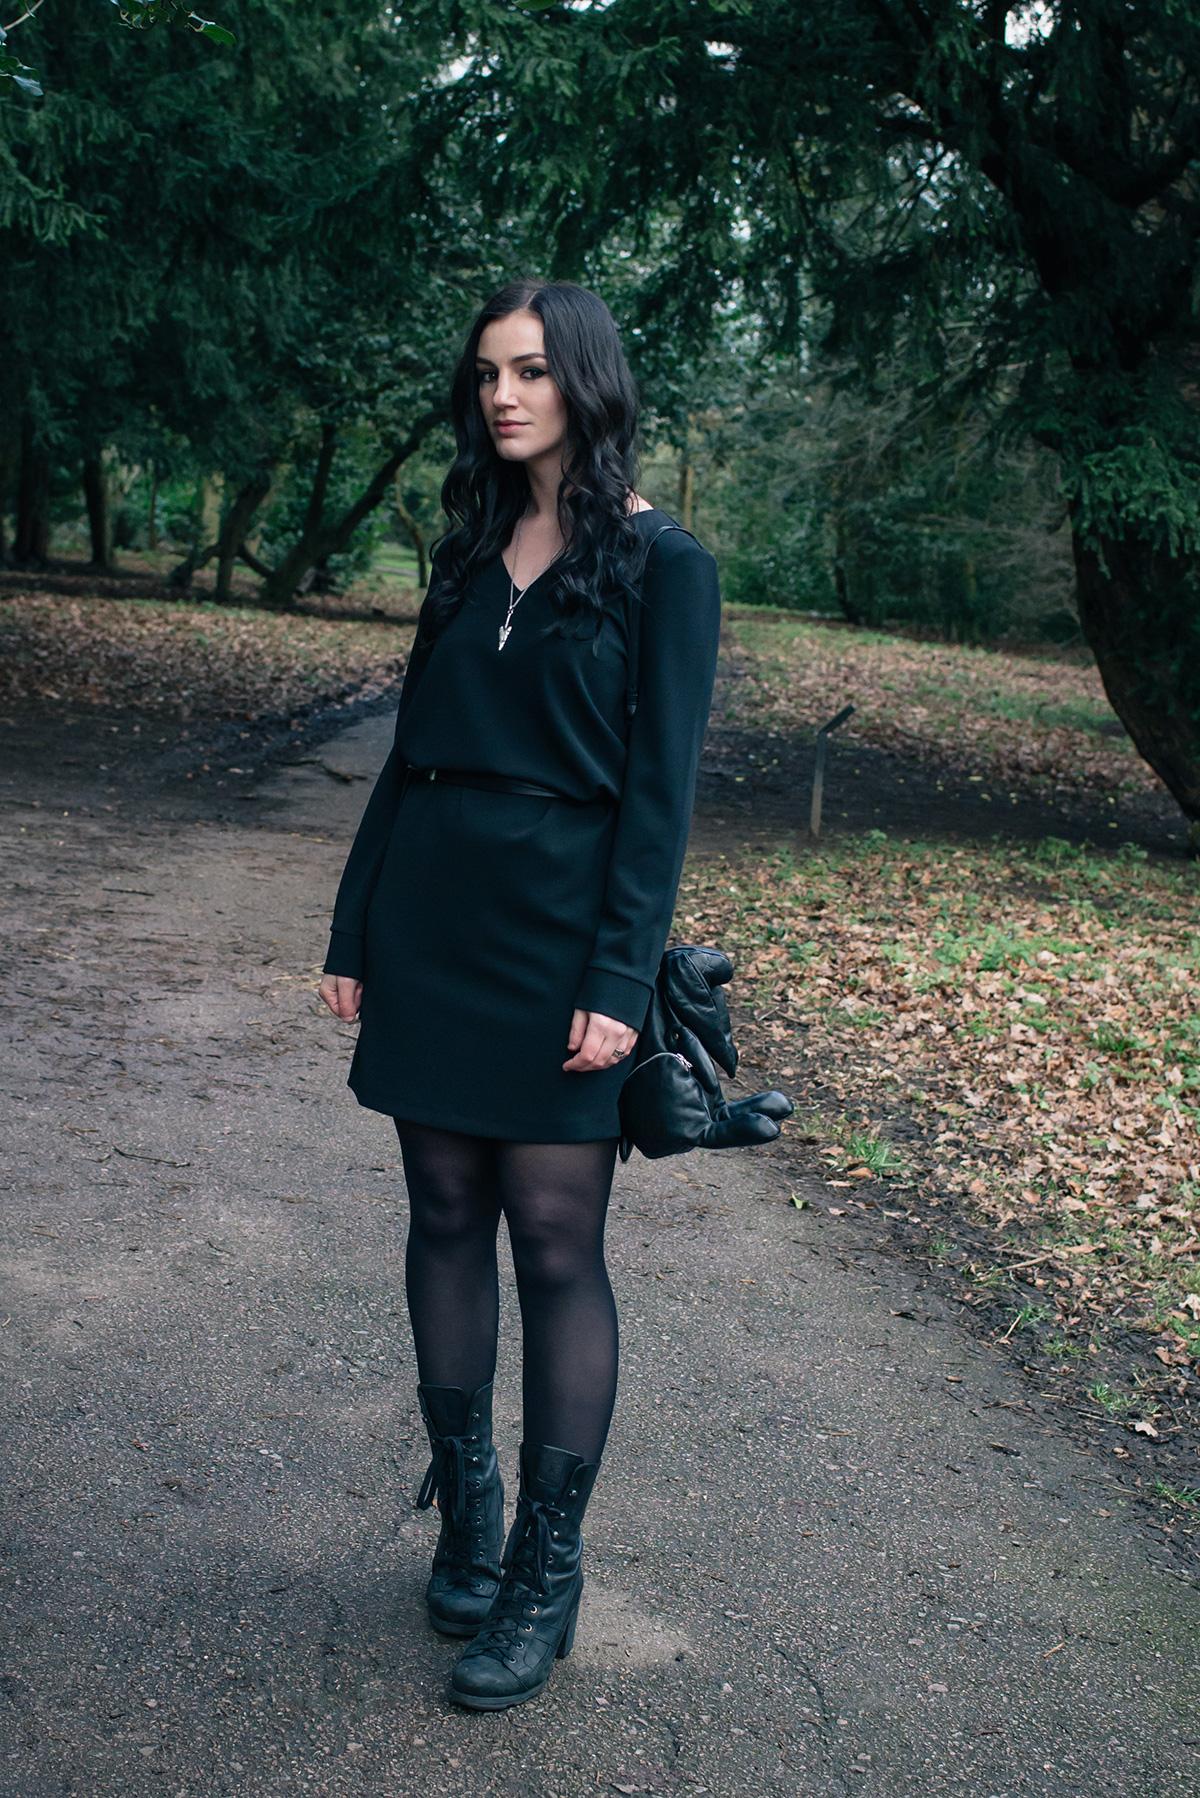 Fashion blogger Stephanie of FAIIINT wearing Le Tee Paris little black shift dress, O.X.S. lace up boots, Christopher Raeburn Hare bag. All black dark style outfit.